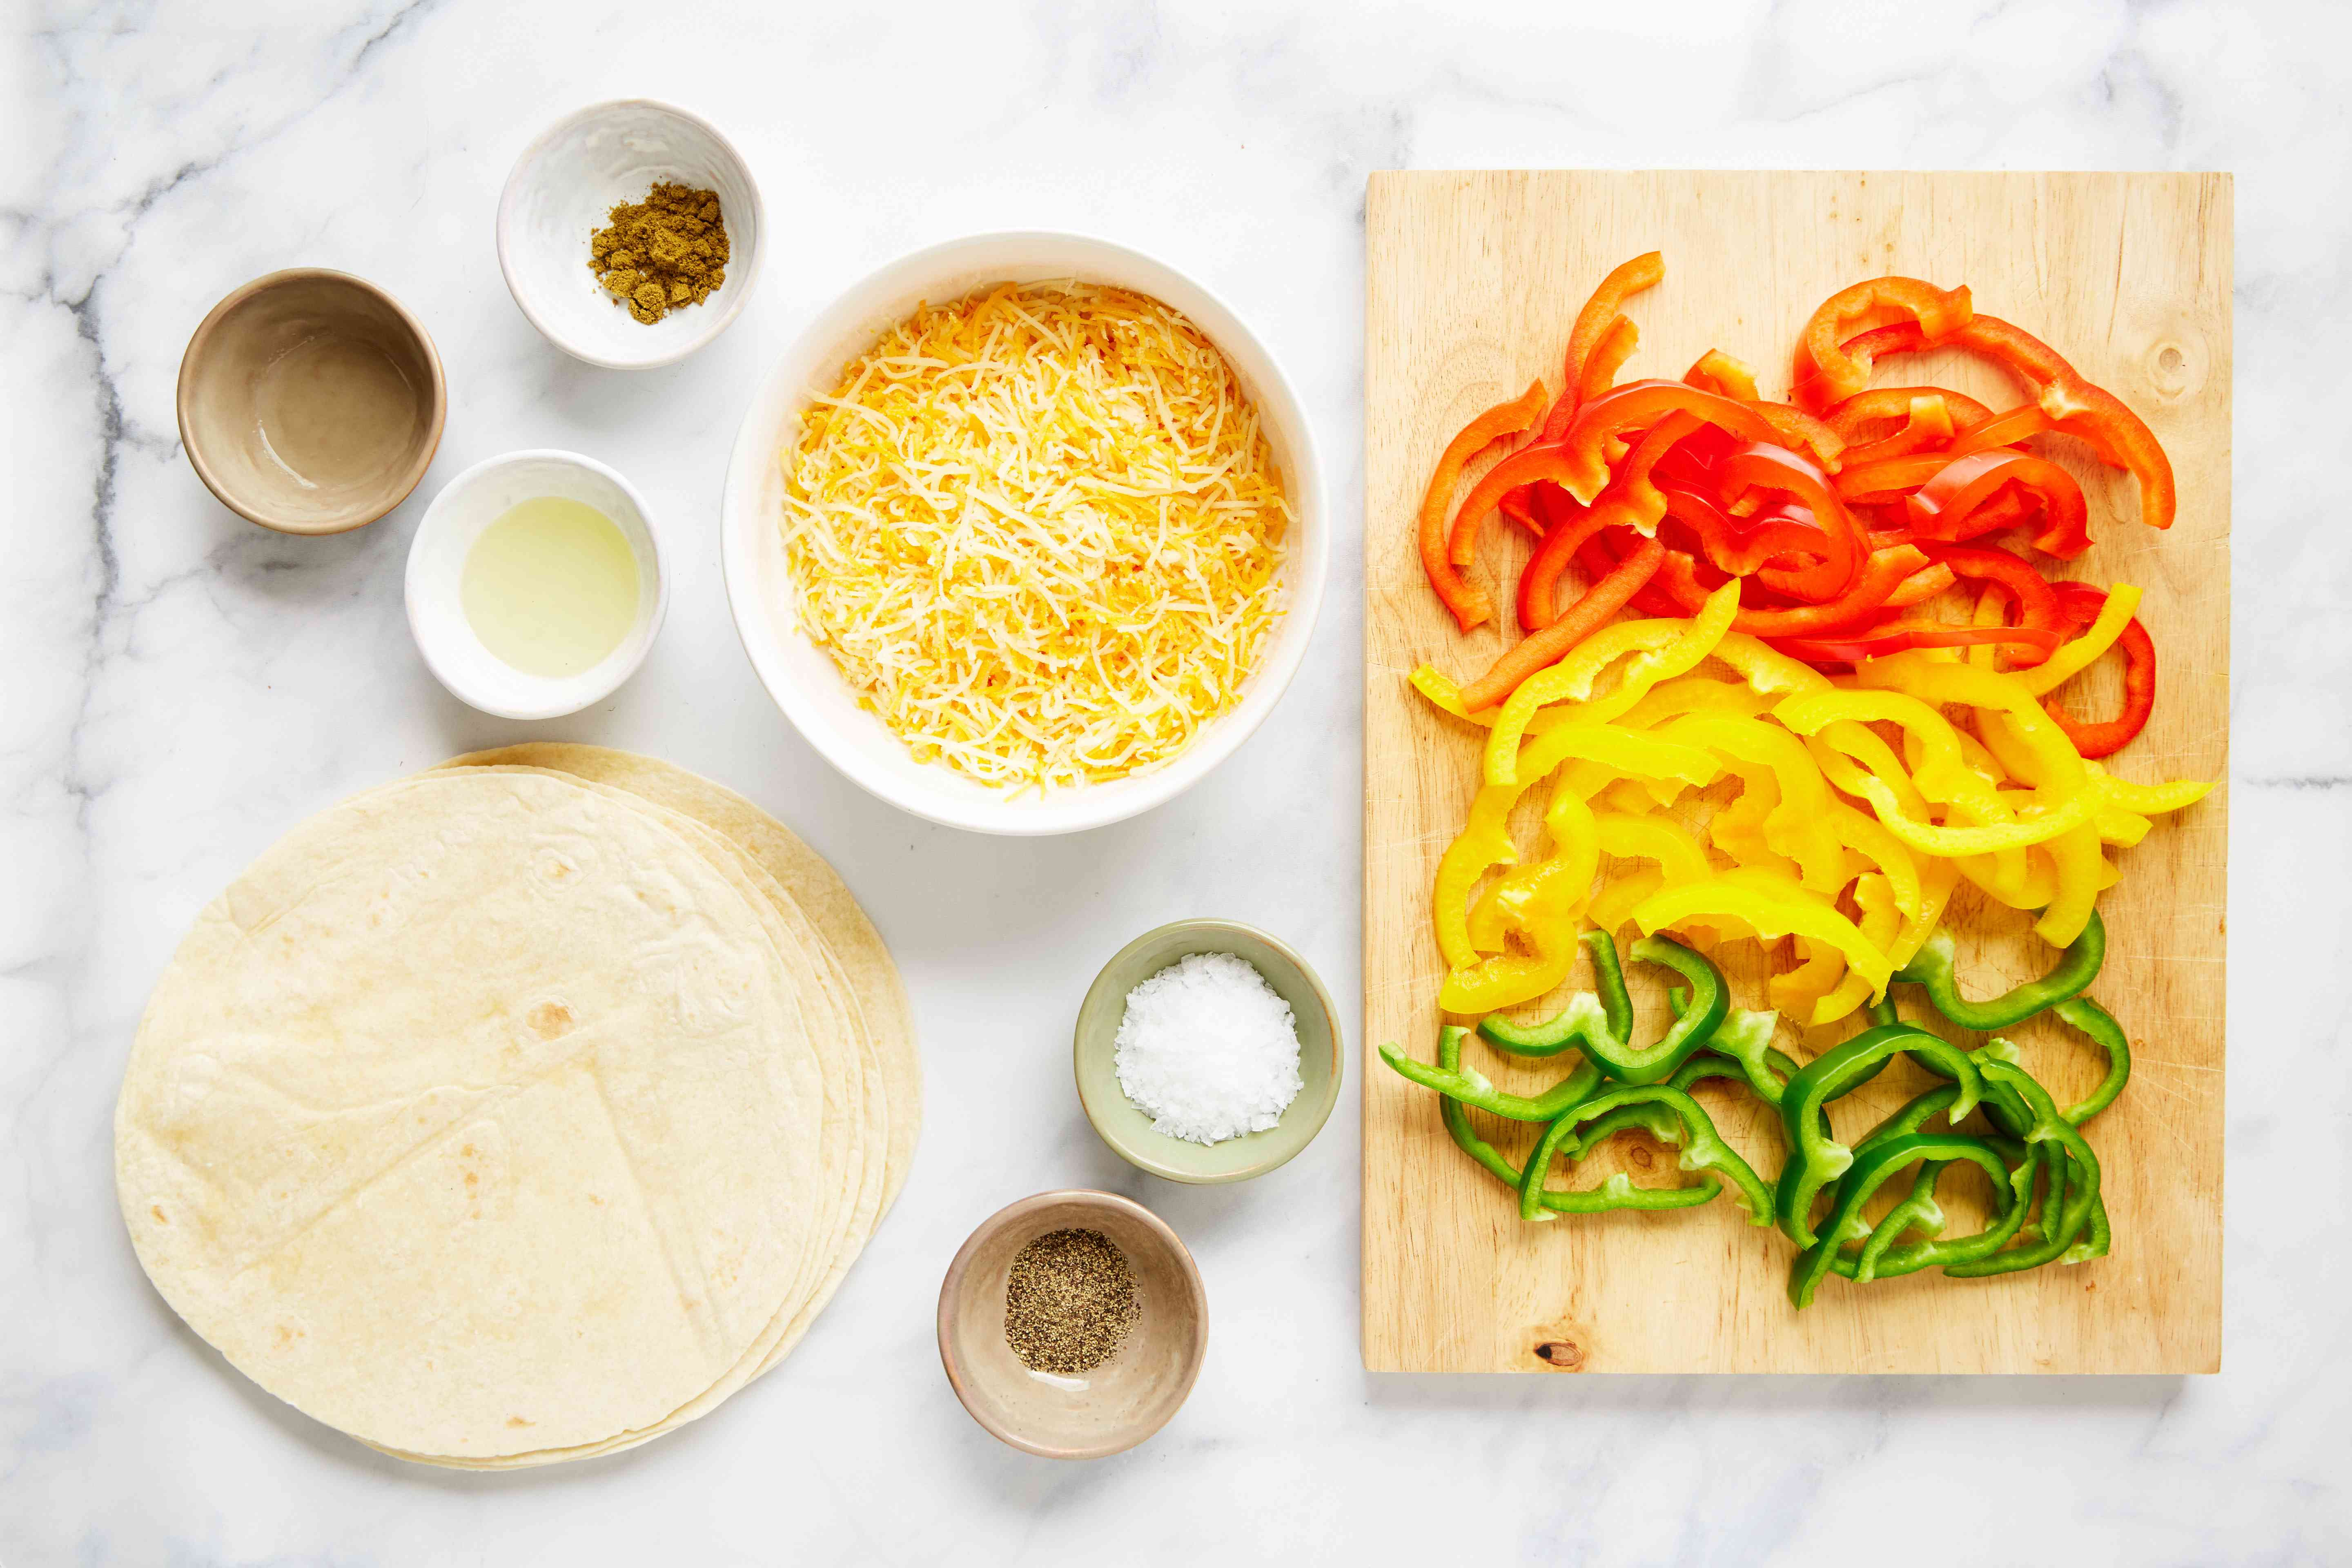 Ingredients for bell pepper quesadilla